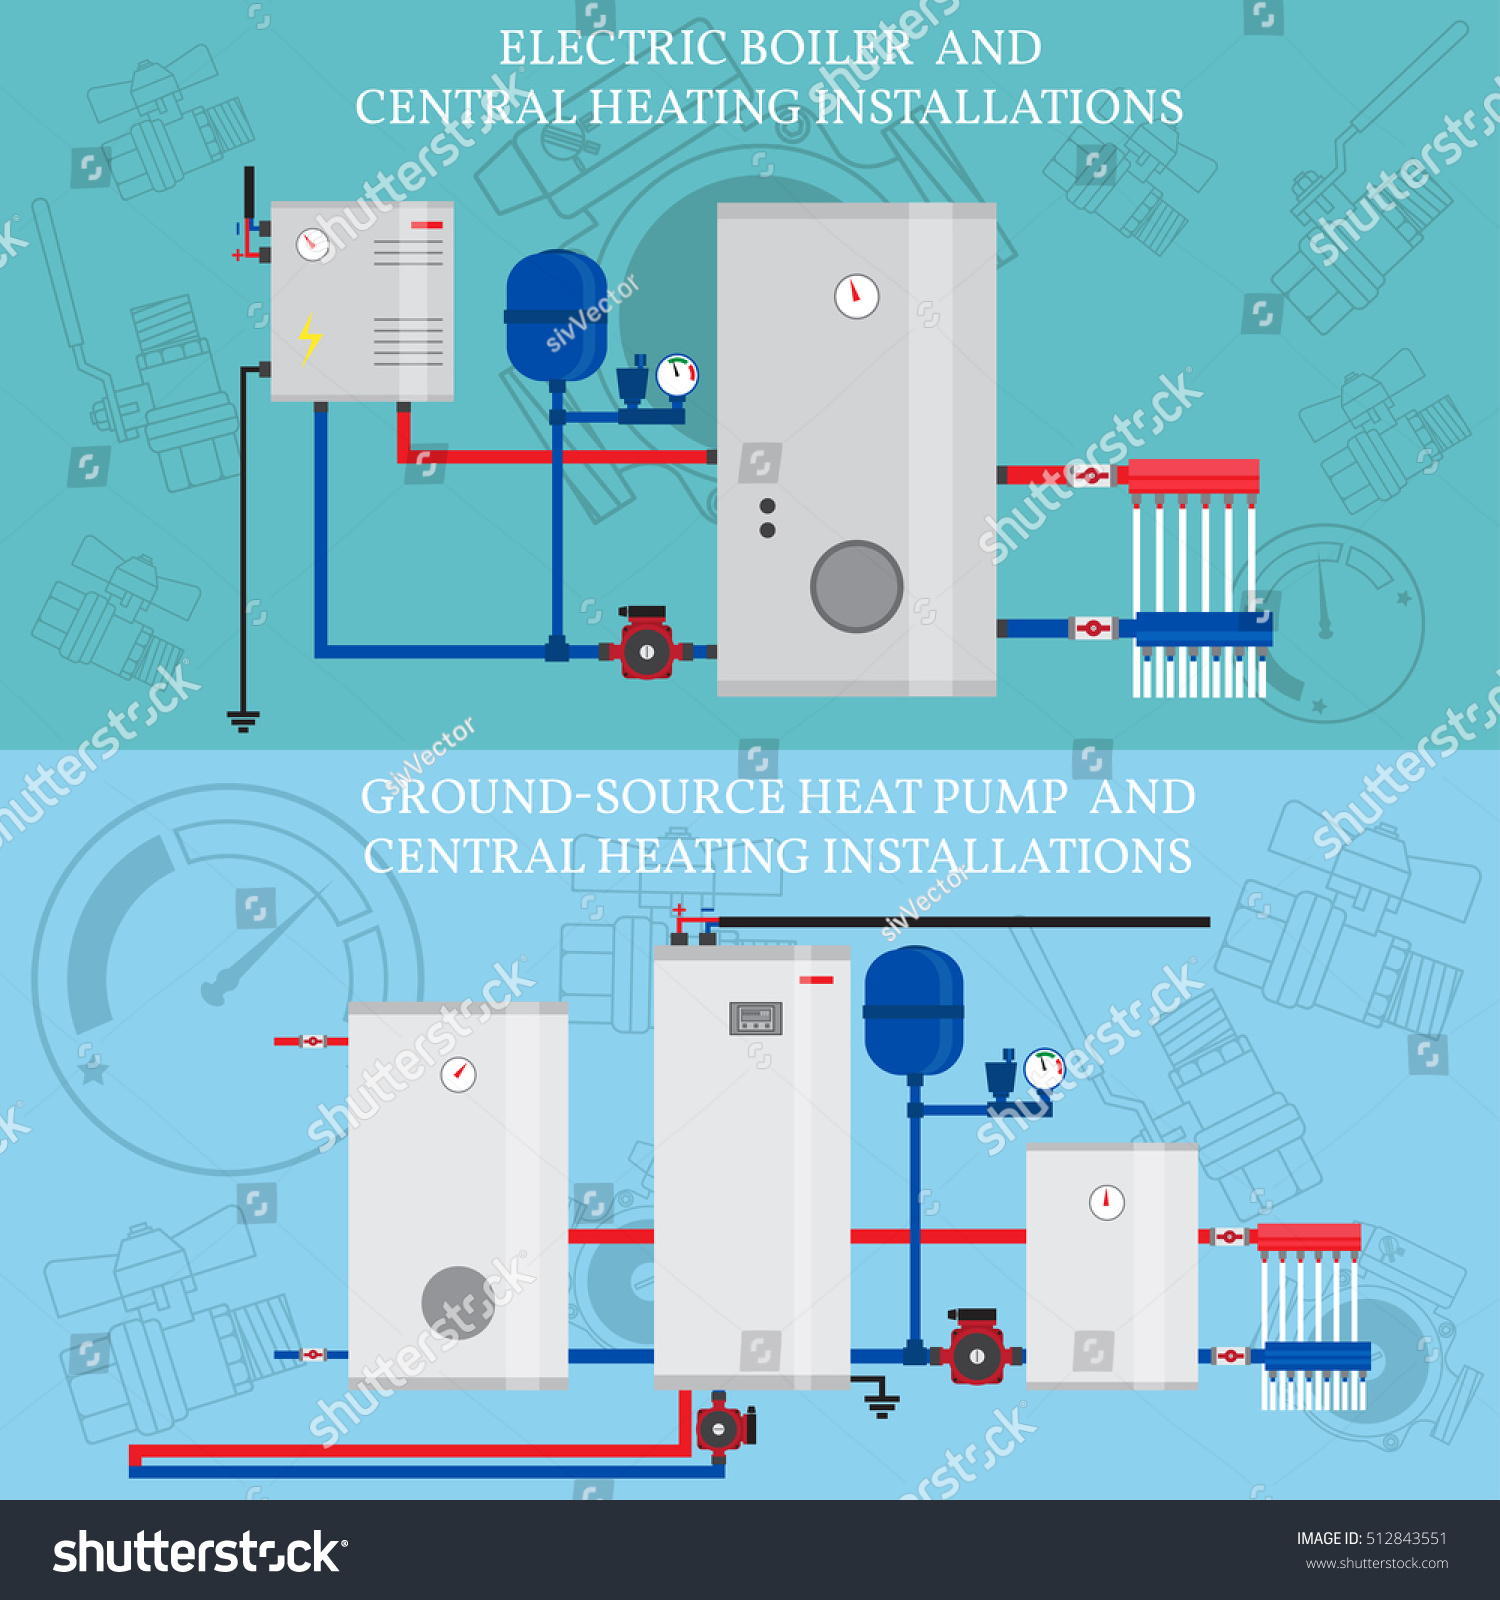 Electric Boiler Central Heating Installations Flat Stock Vector ...